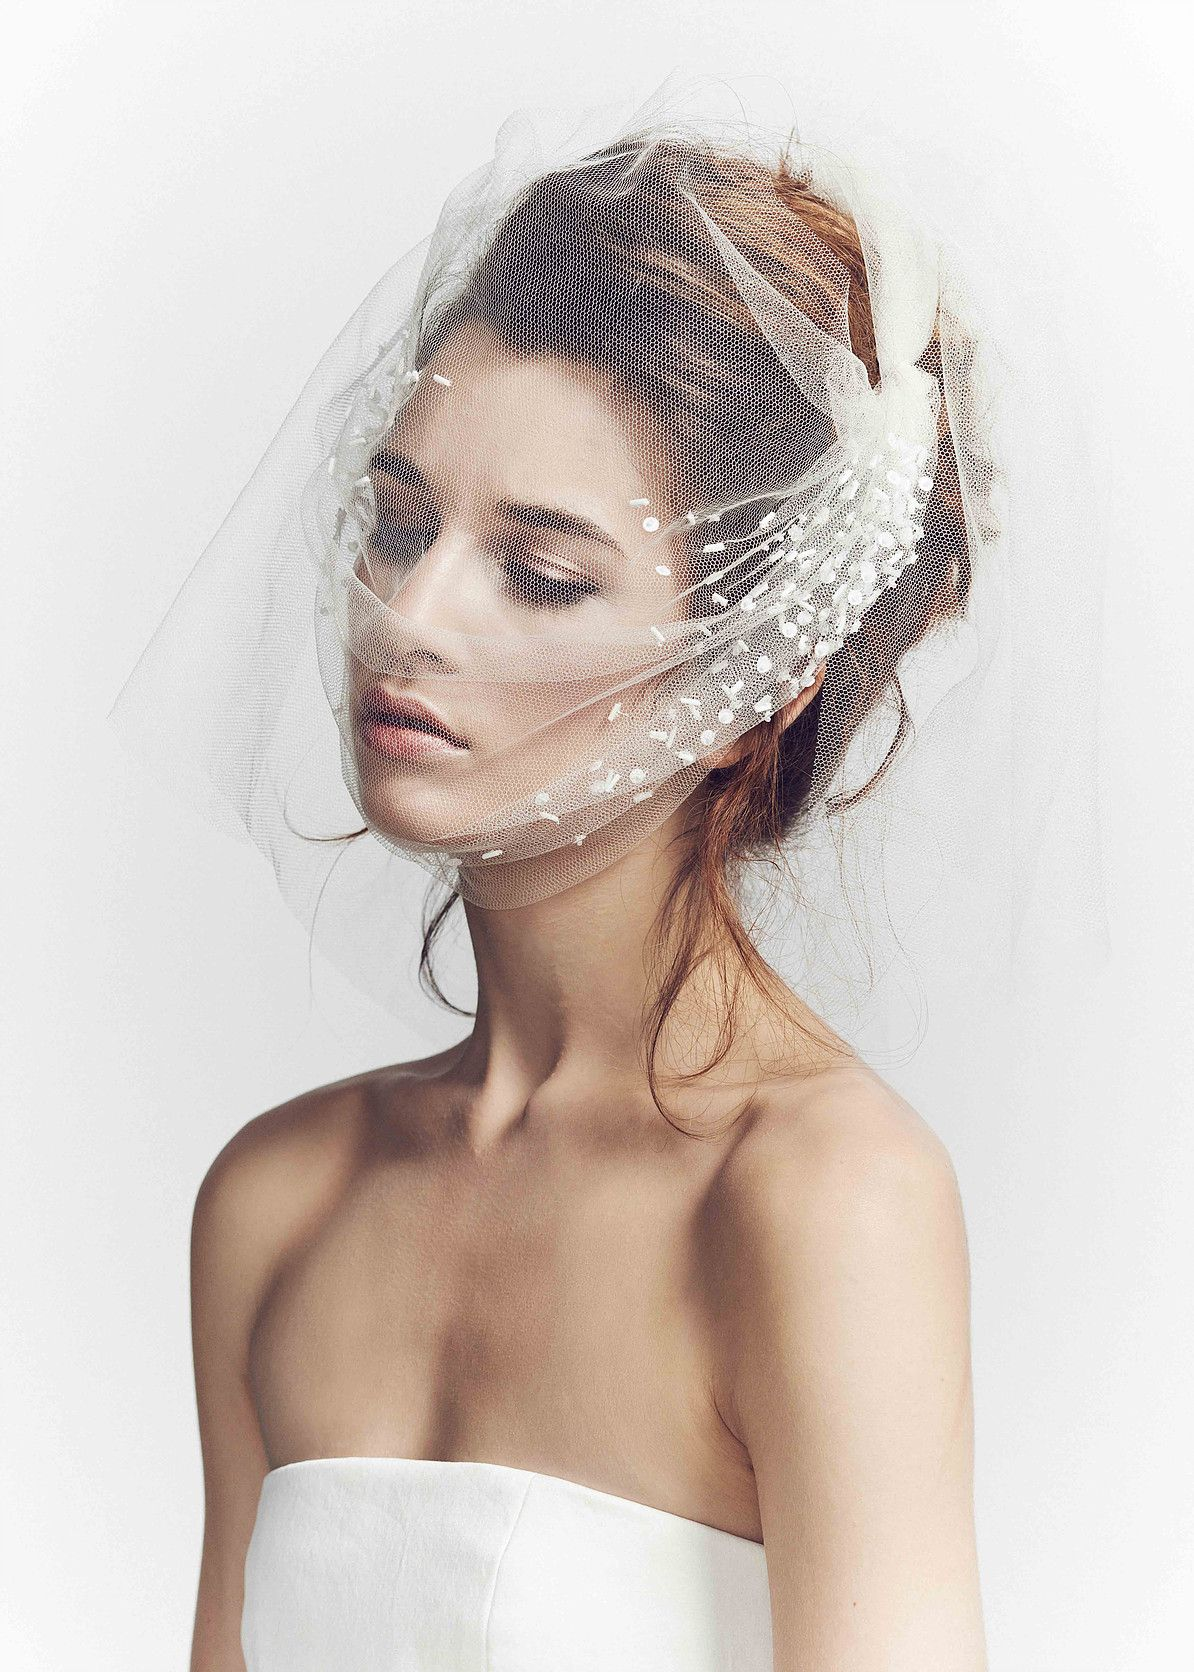 luna bea | luxury bridal hair accessories | london | styling tips